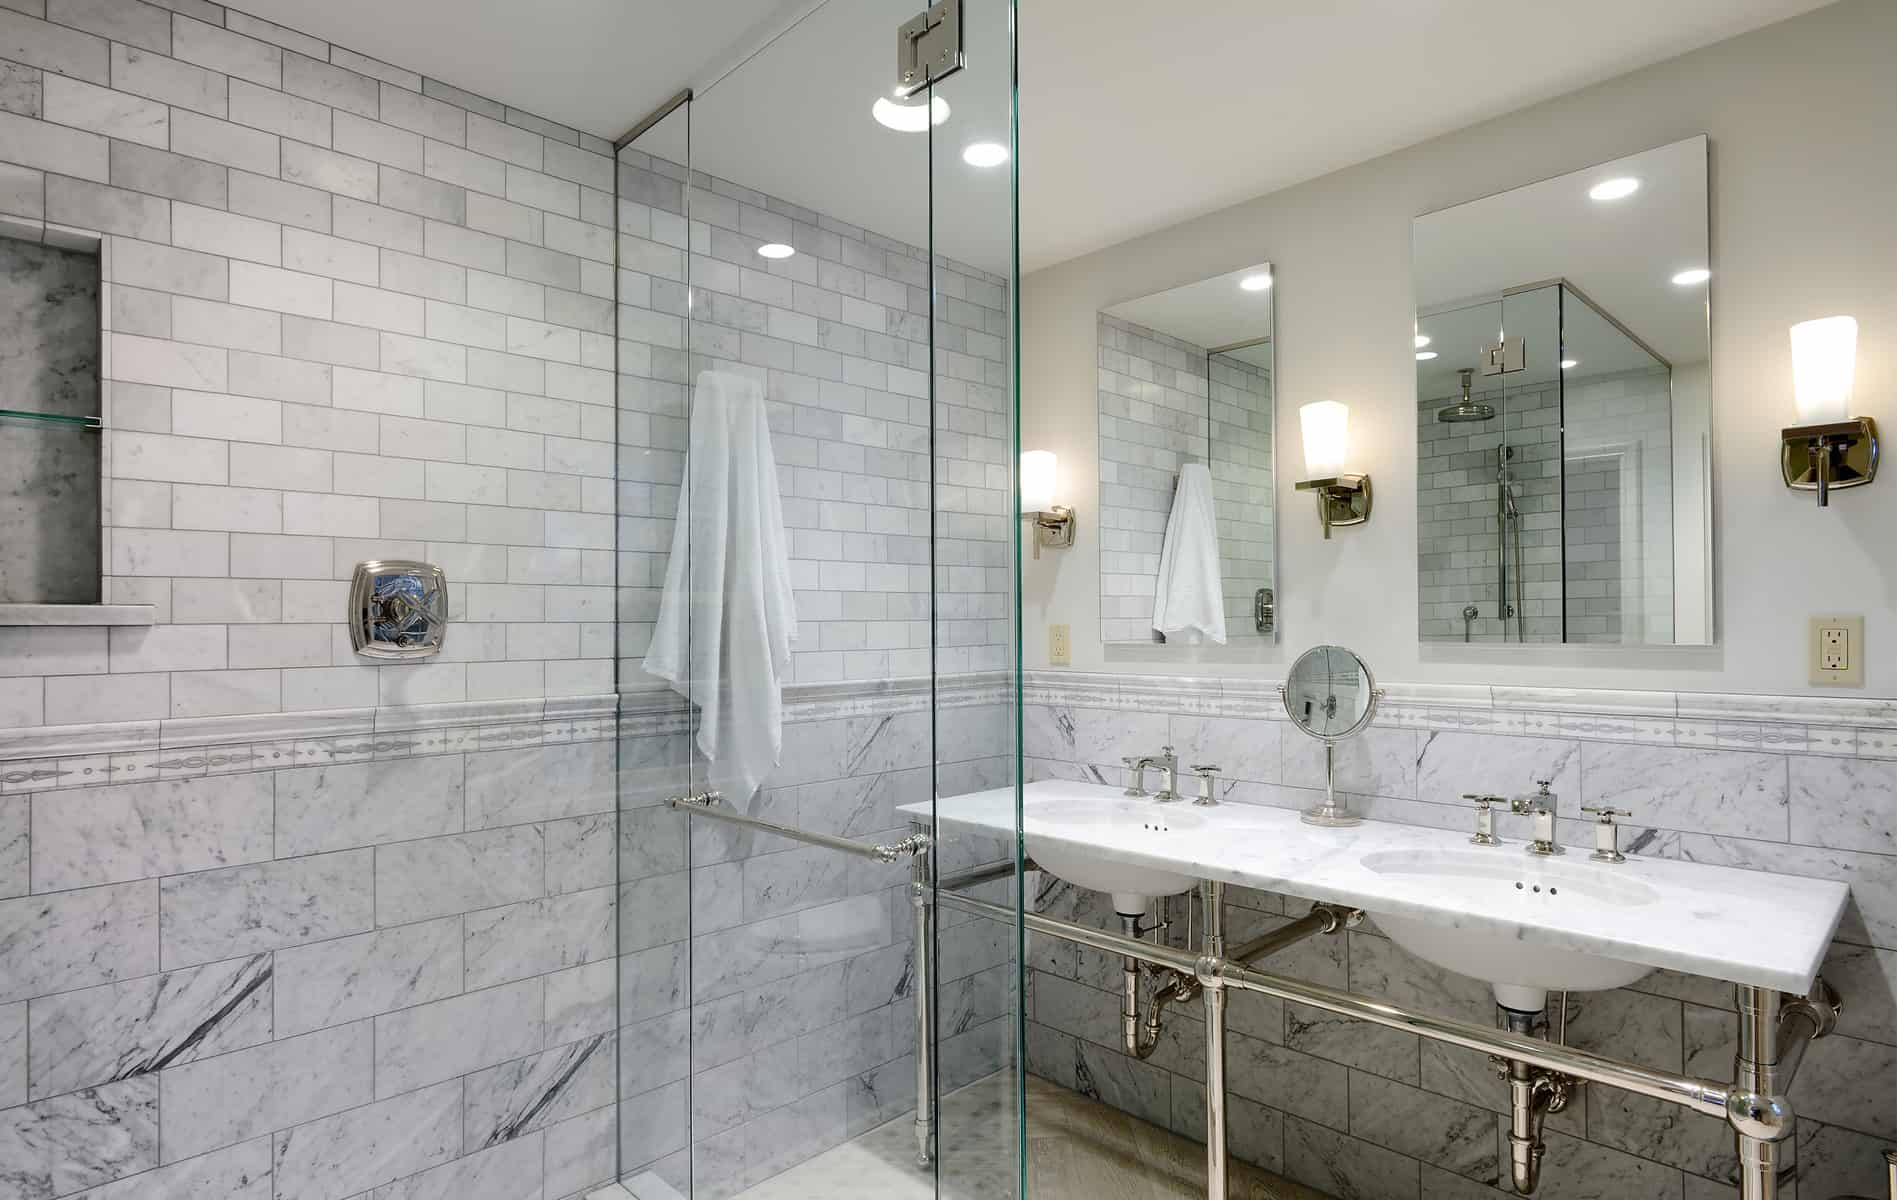 7 smart strategies for bathroom remodeling biederman for Kitchen bathroom renovations